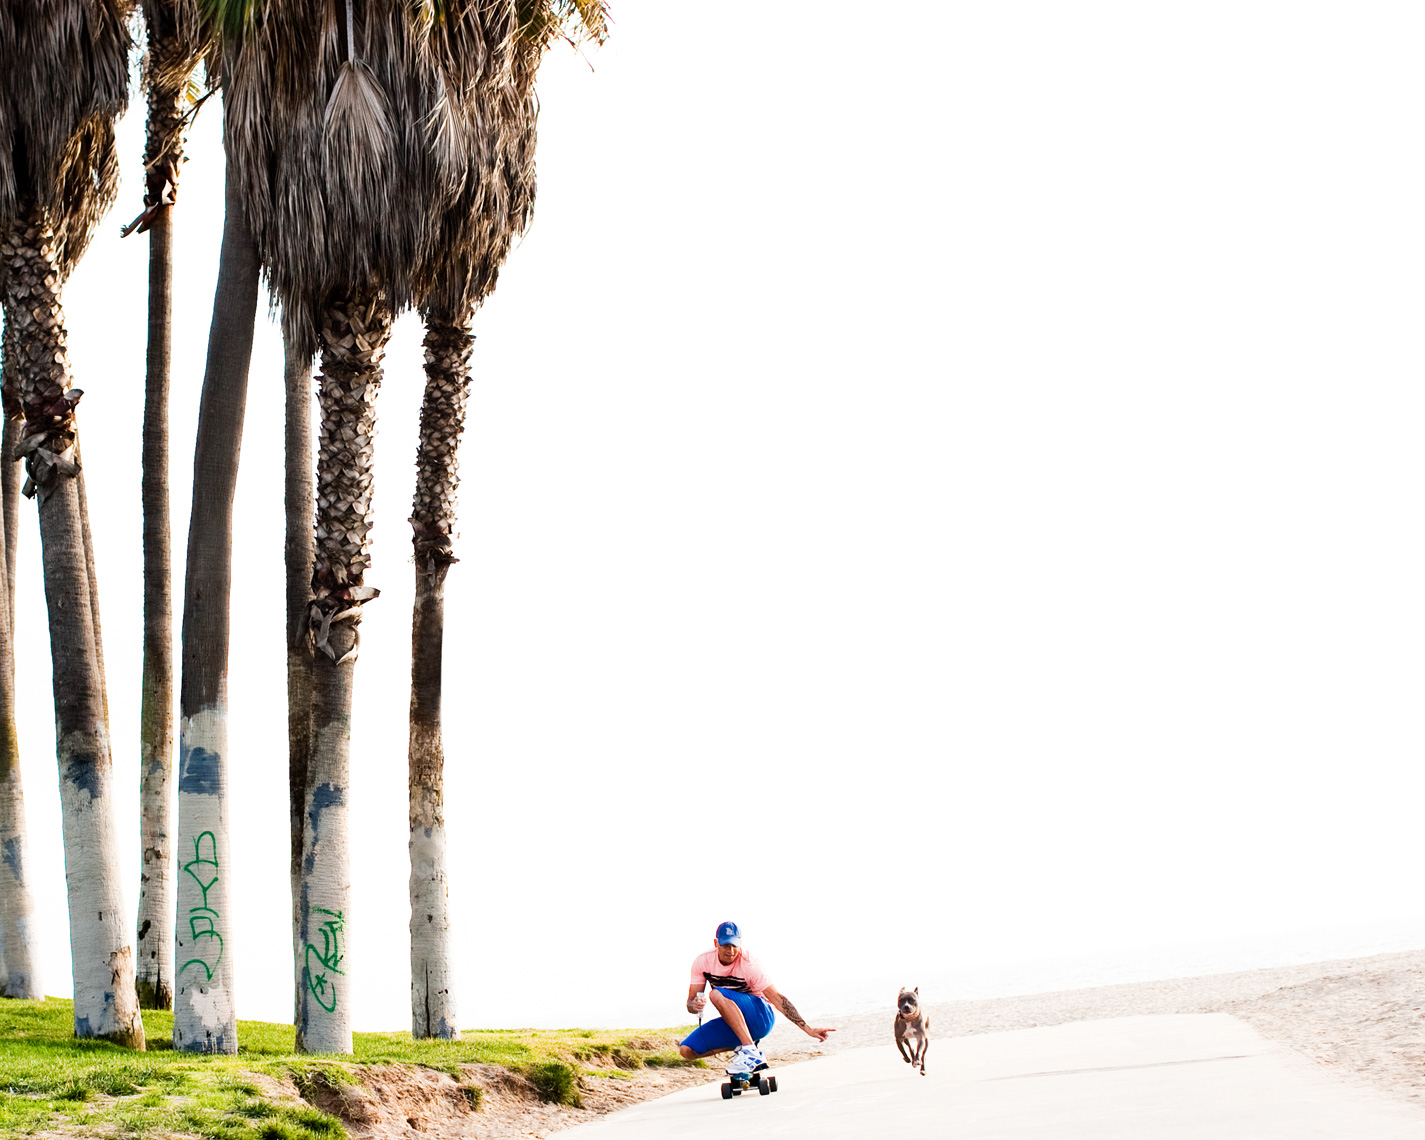 Los Angeles Dog Photography, Michael Brian, pet, cat, Tyson Kilmer, Pit Bull, Venice beach skateboard, Kasha Fierce, Dog Trainer